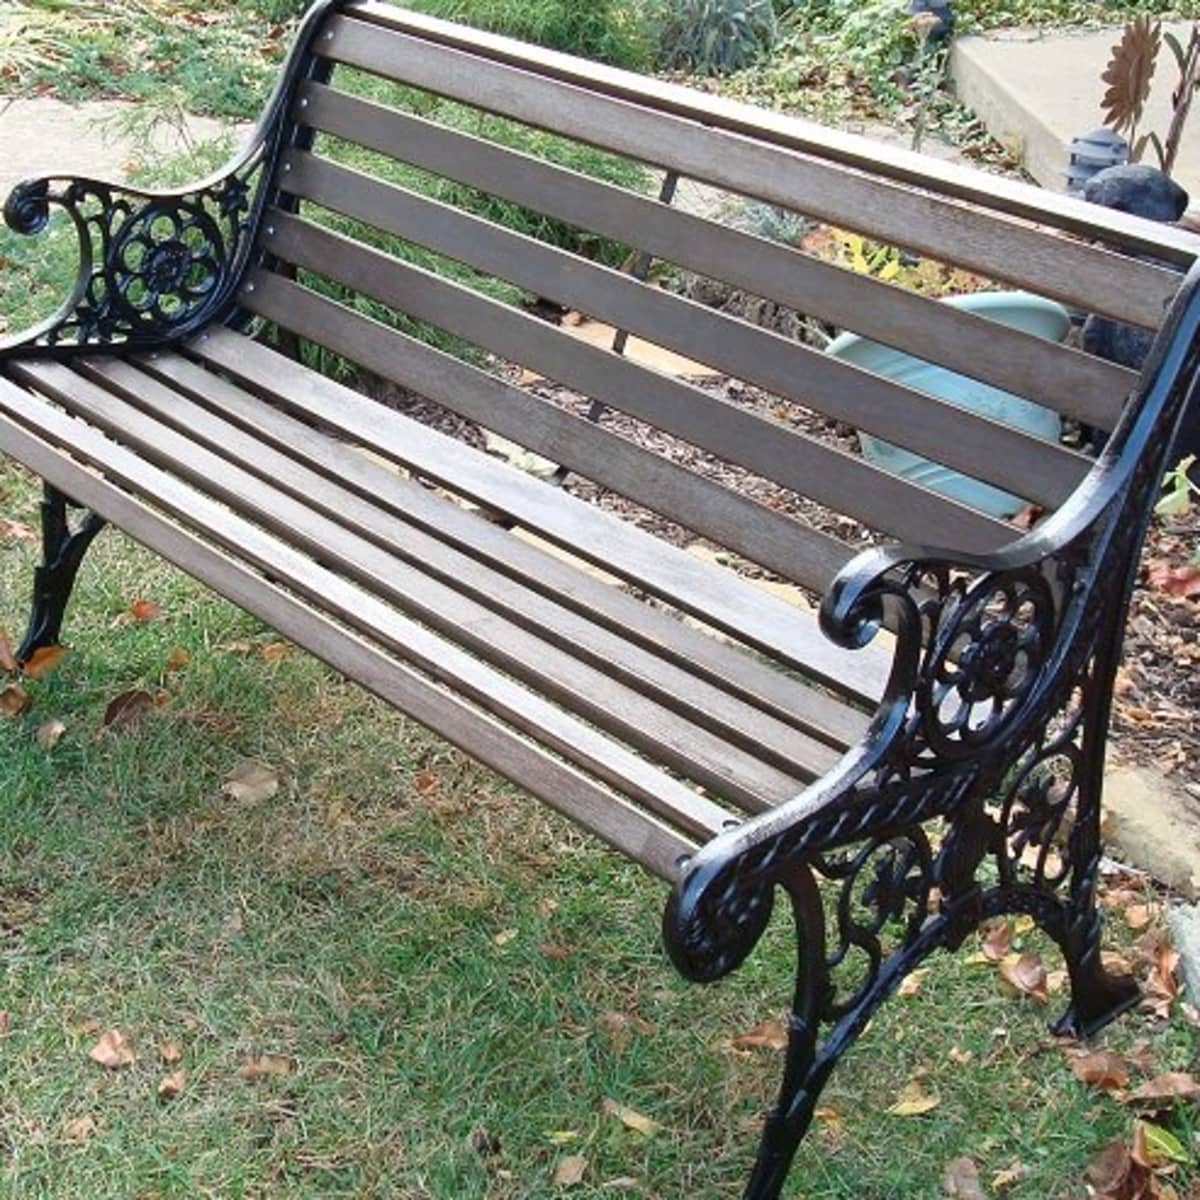 How To Restore A Wood And Cast Iron Garden Bench Dengarden Home And Garden